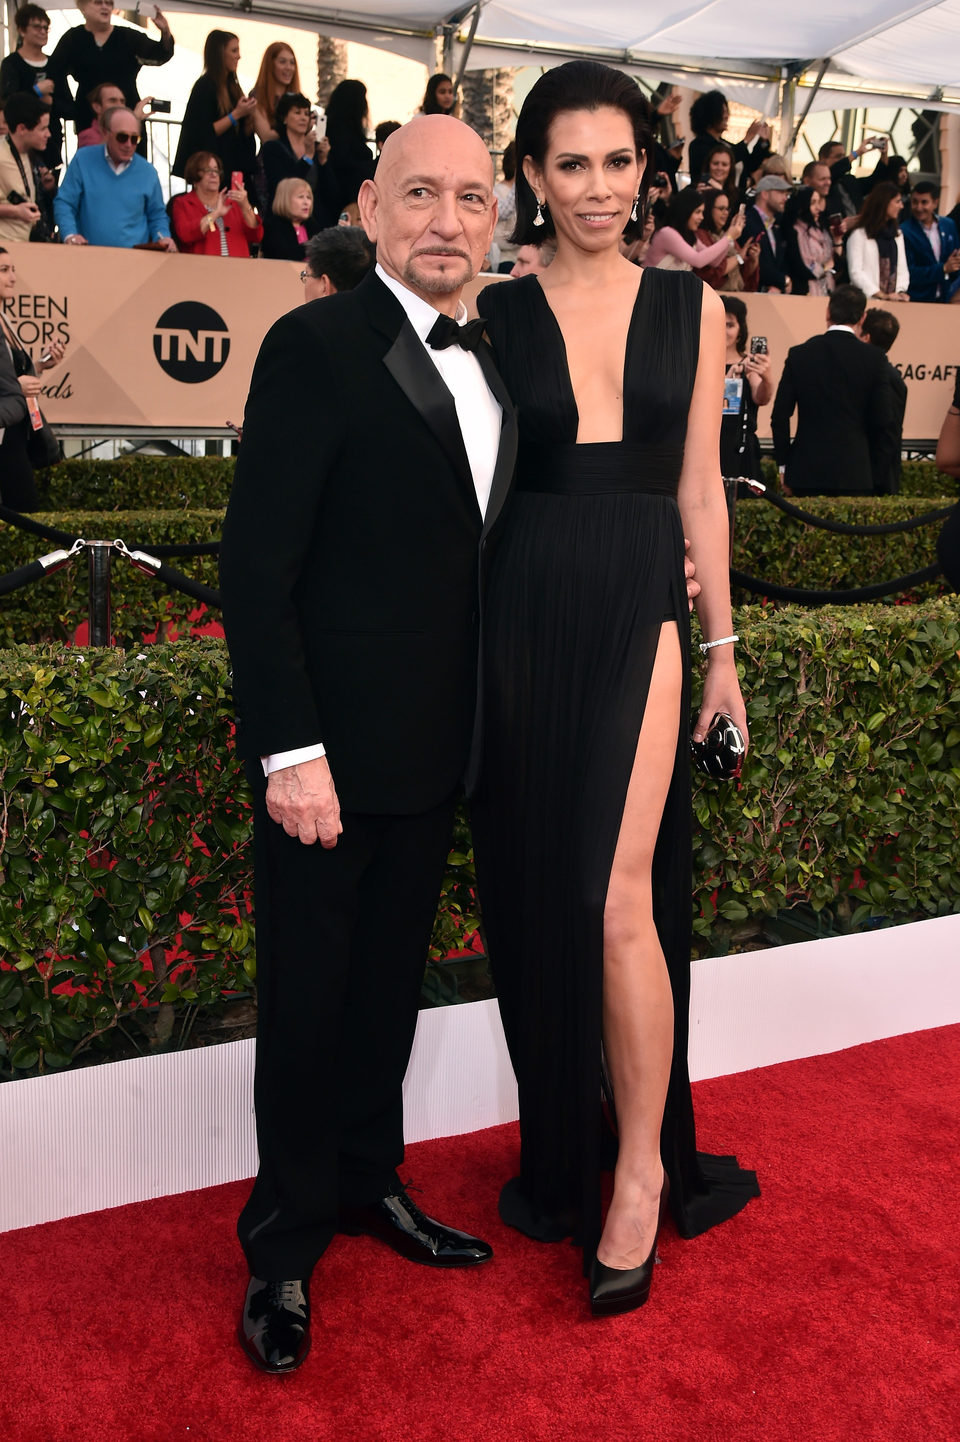 Ben Kingsley and Daniela Lavender in red carpet of SAG Awards 2106